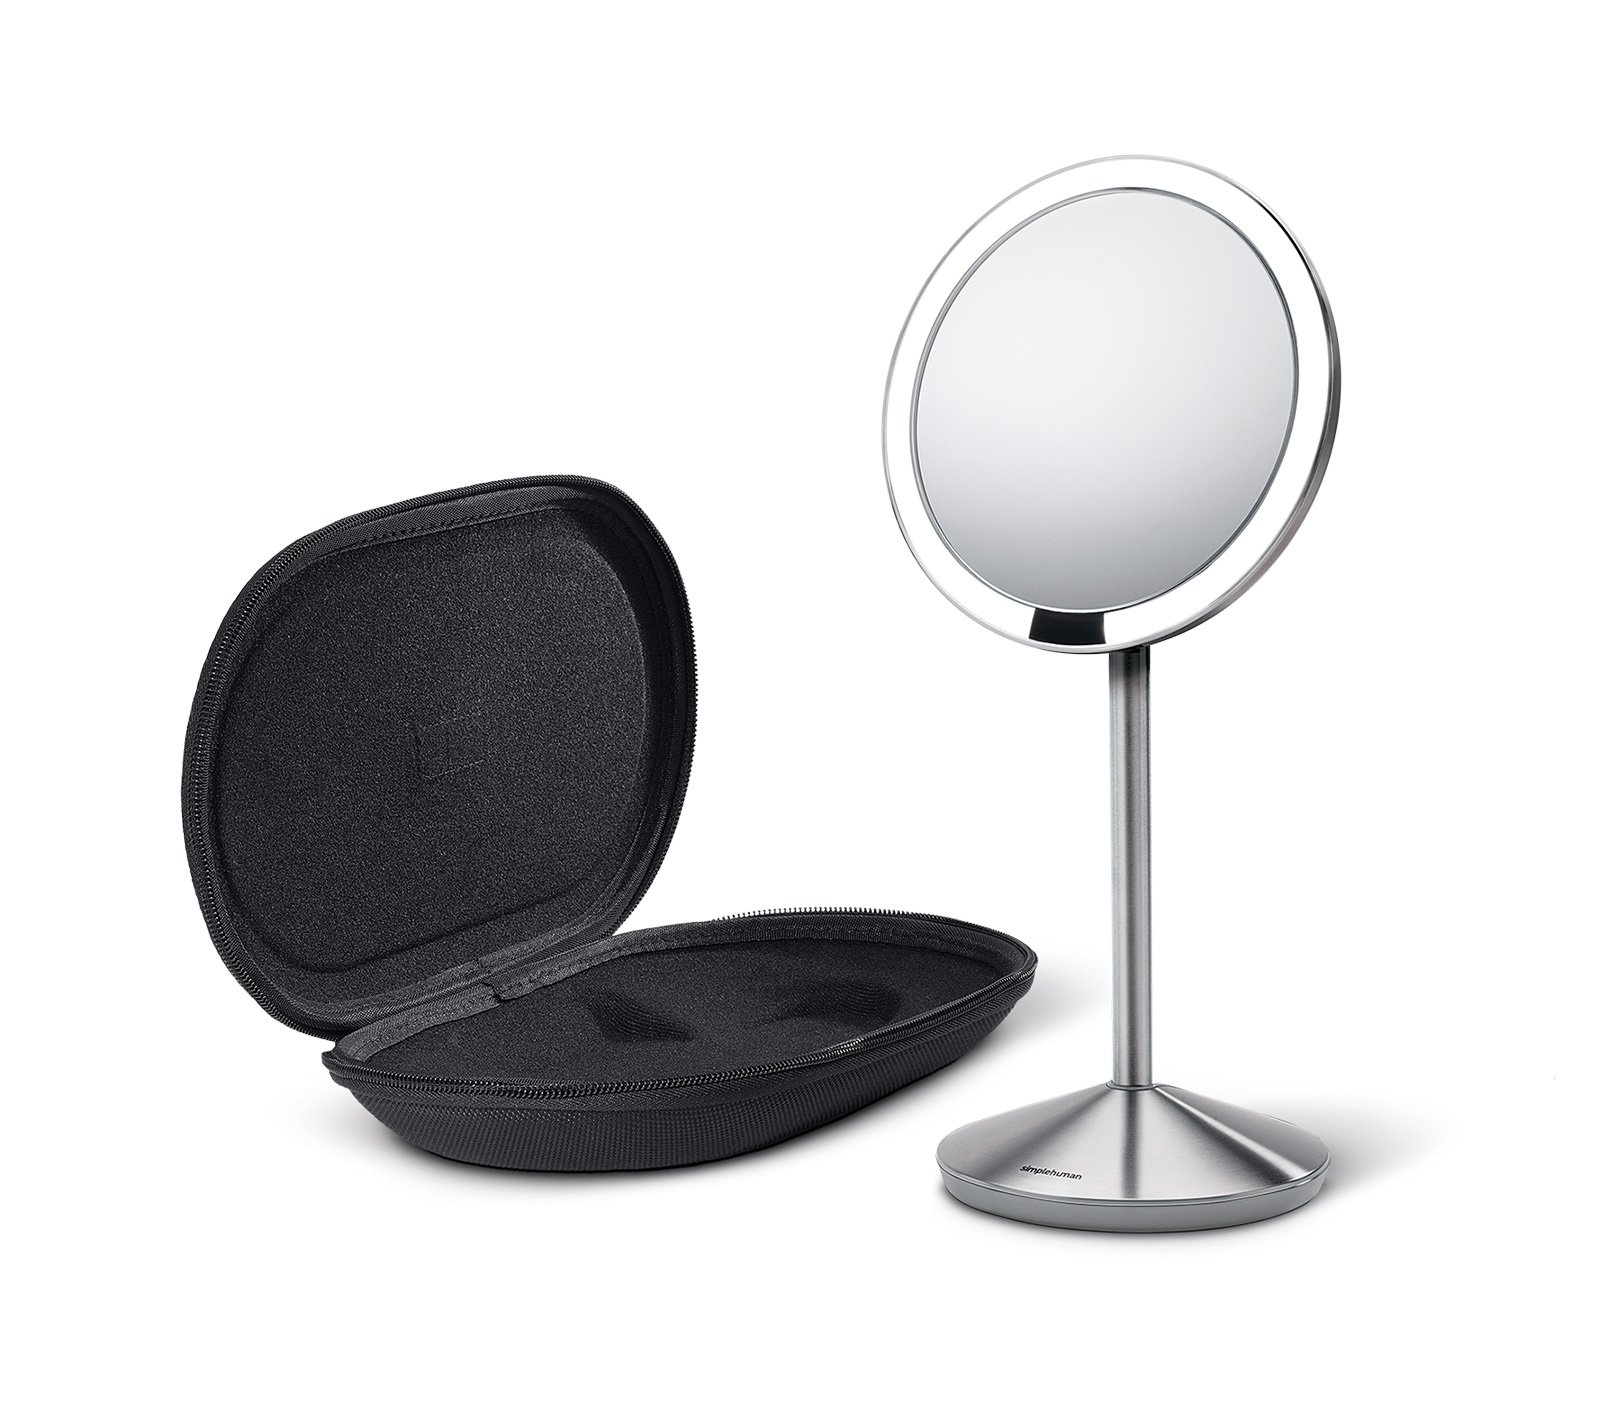 simplehuman 5 inch Sensor Mirror, Lighted Makeup Mirror, 10x Magnification